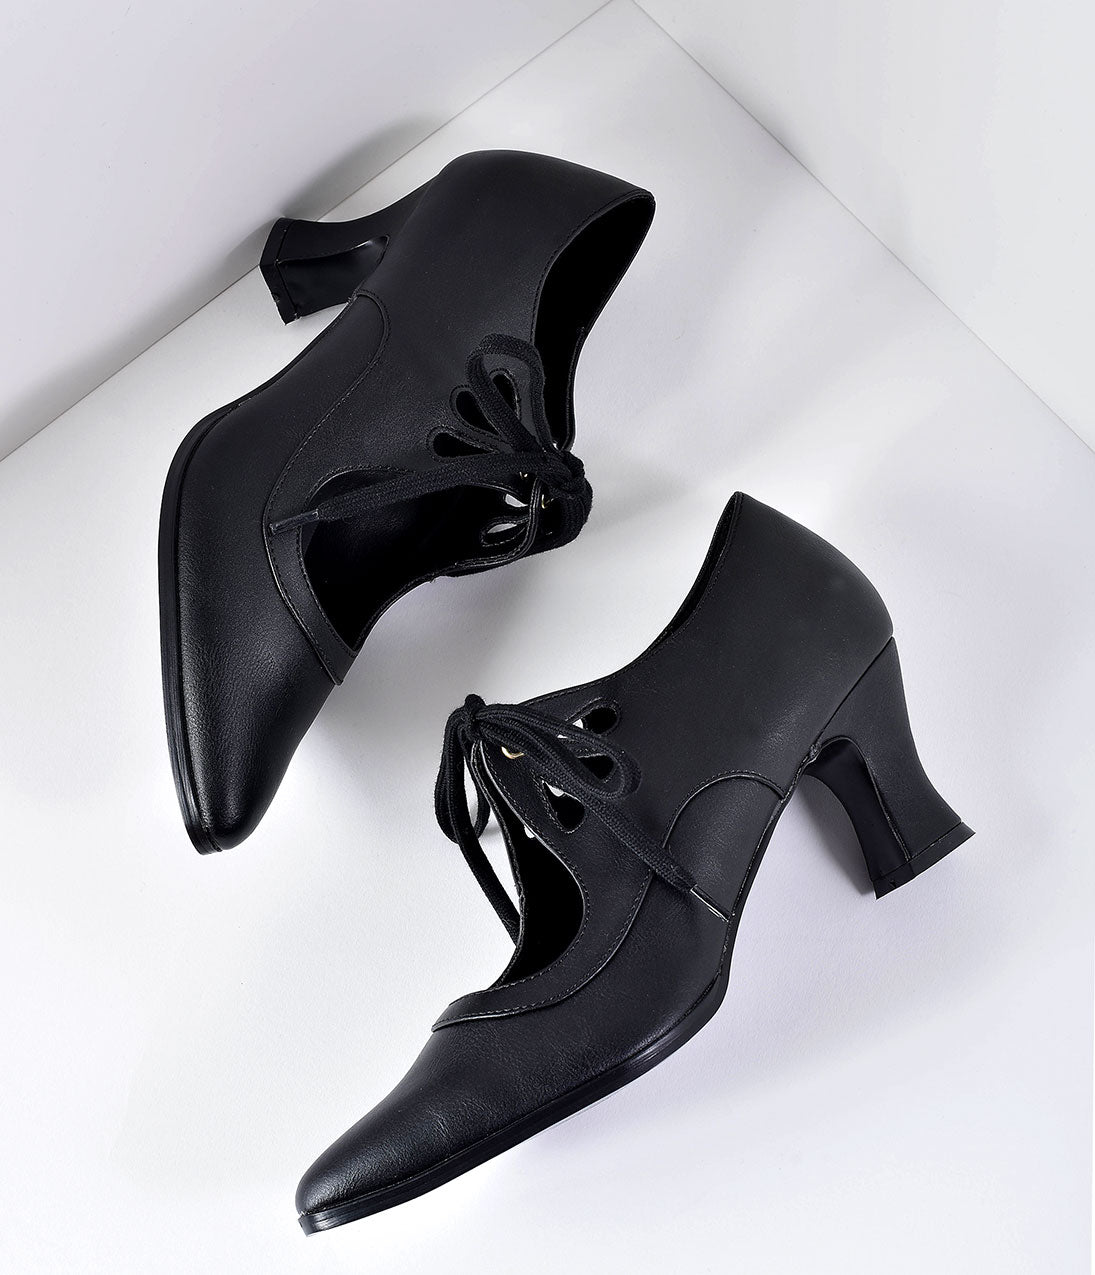 Edwardian Shoes & Boots | Titanic Shoes Vintage Style Black Leatherette Bow Tie Pointed Toe Heels $54.00 AT vintagedancer.com